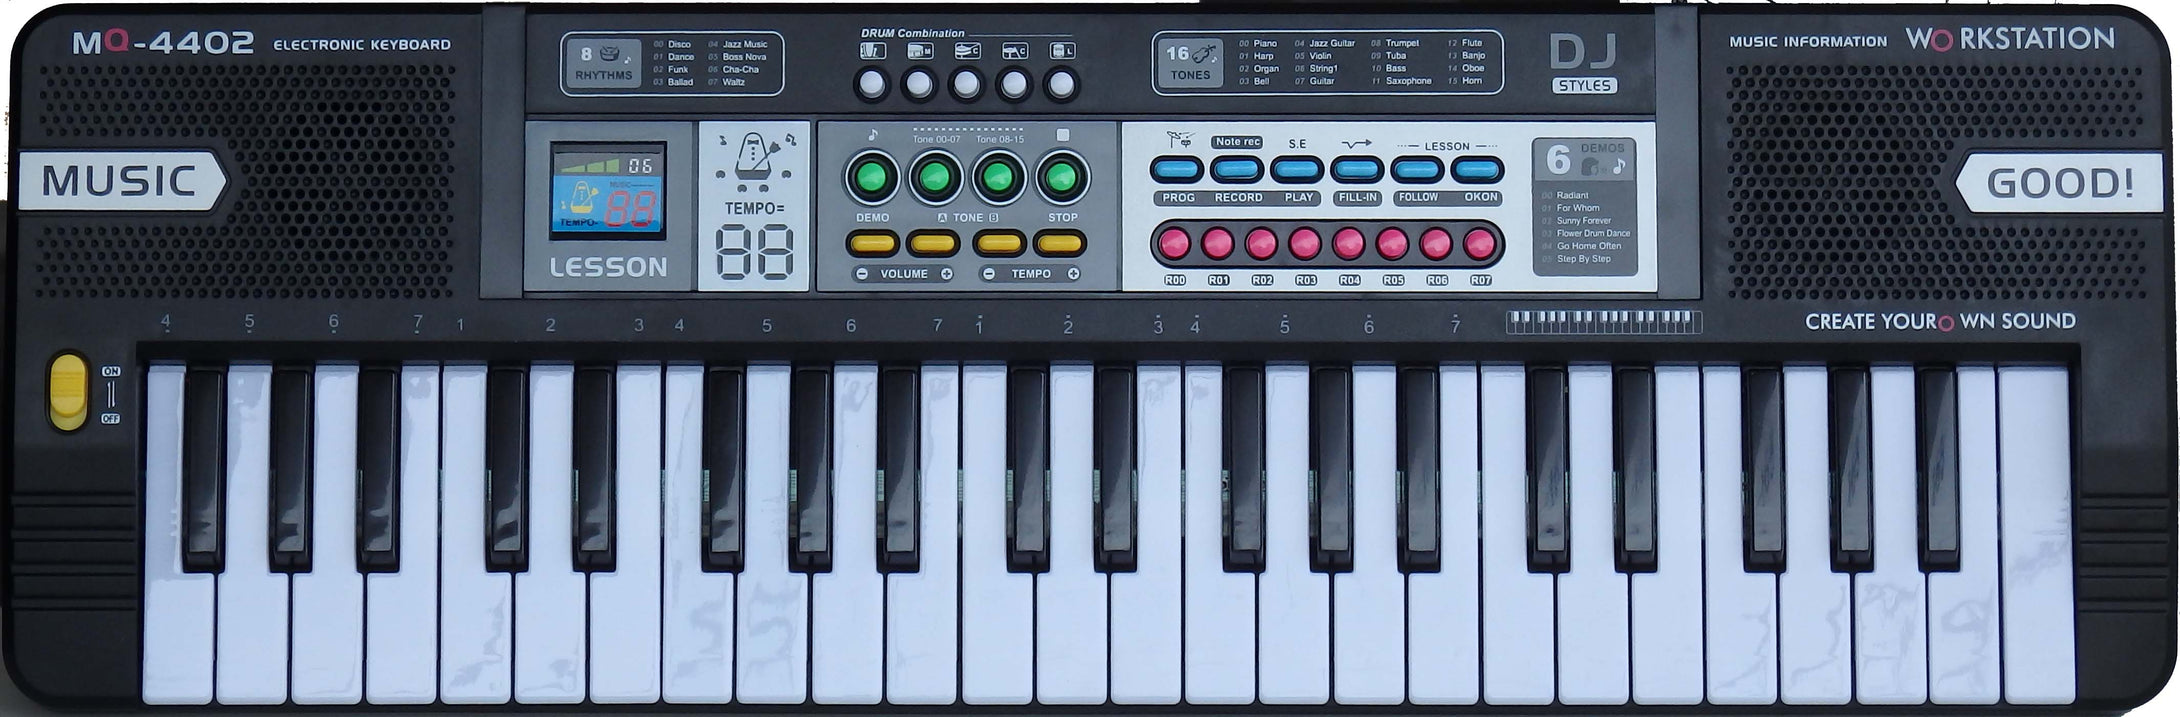 MITSUKI MQ4402 Music Keyboard with 44-Mid side keys